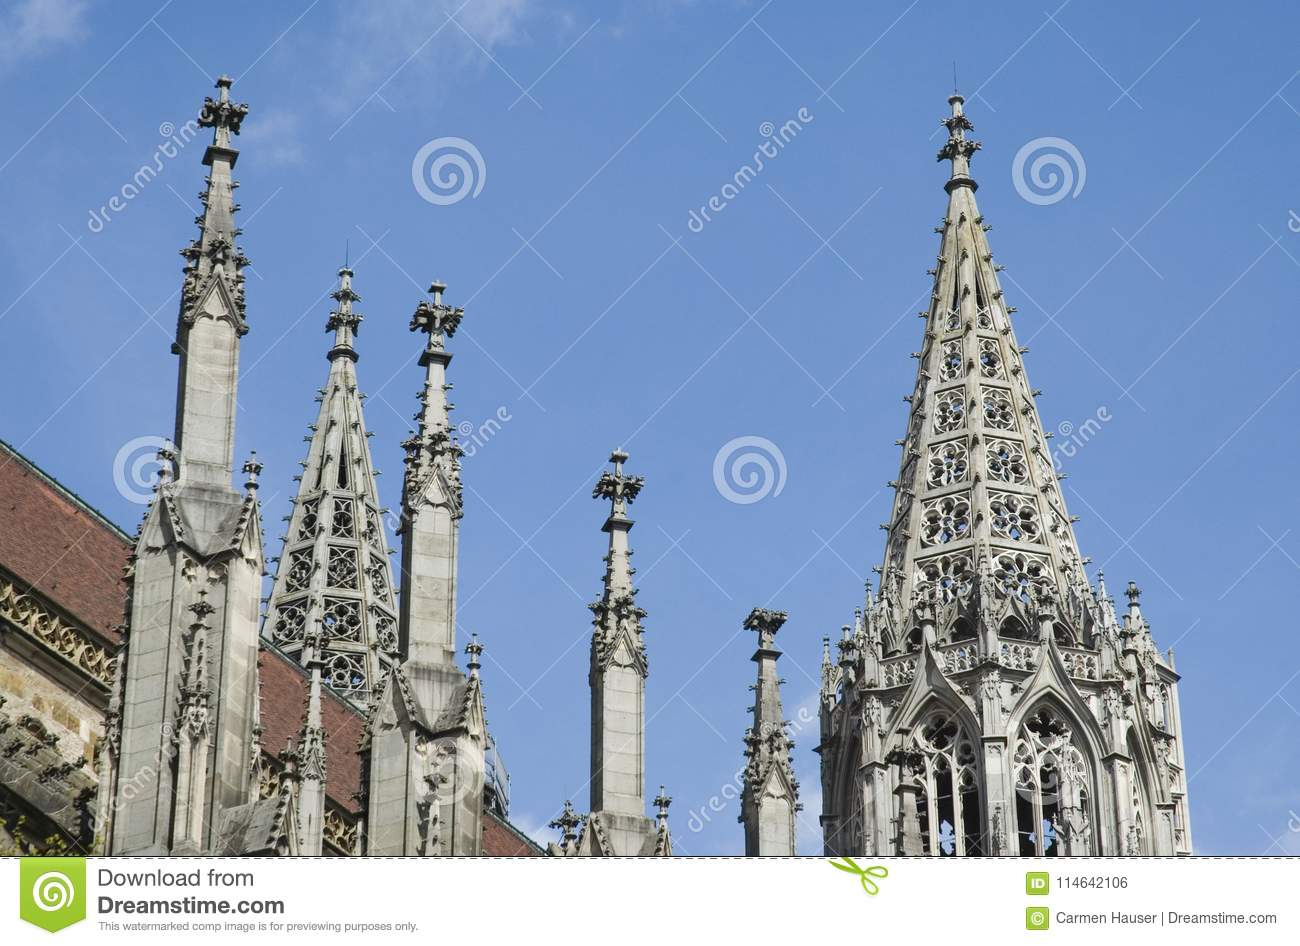 Eastern Spires Of Gothic Church In Ulm With Roof Tiles And Pinnacles Against Blue Sky